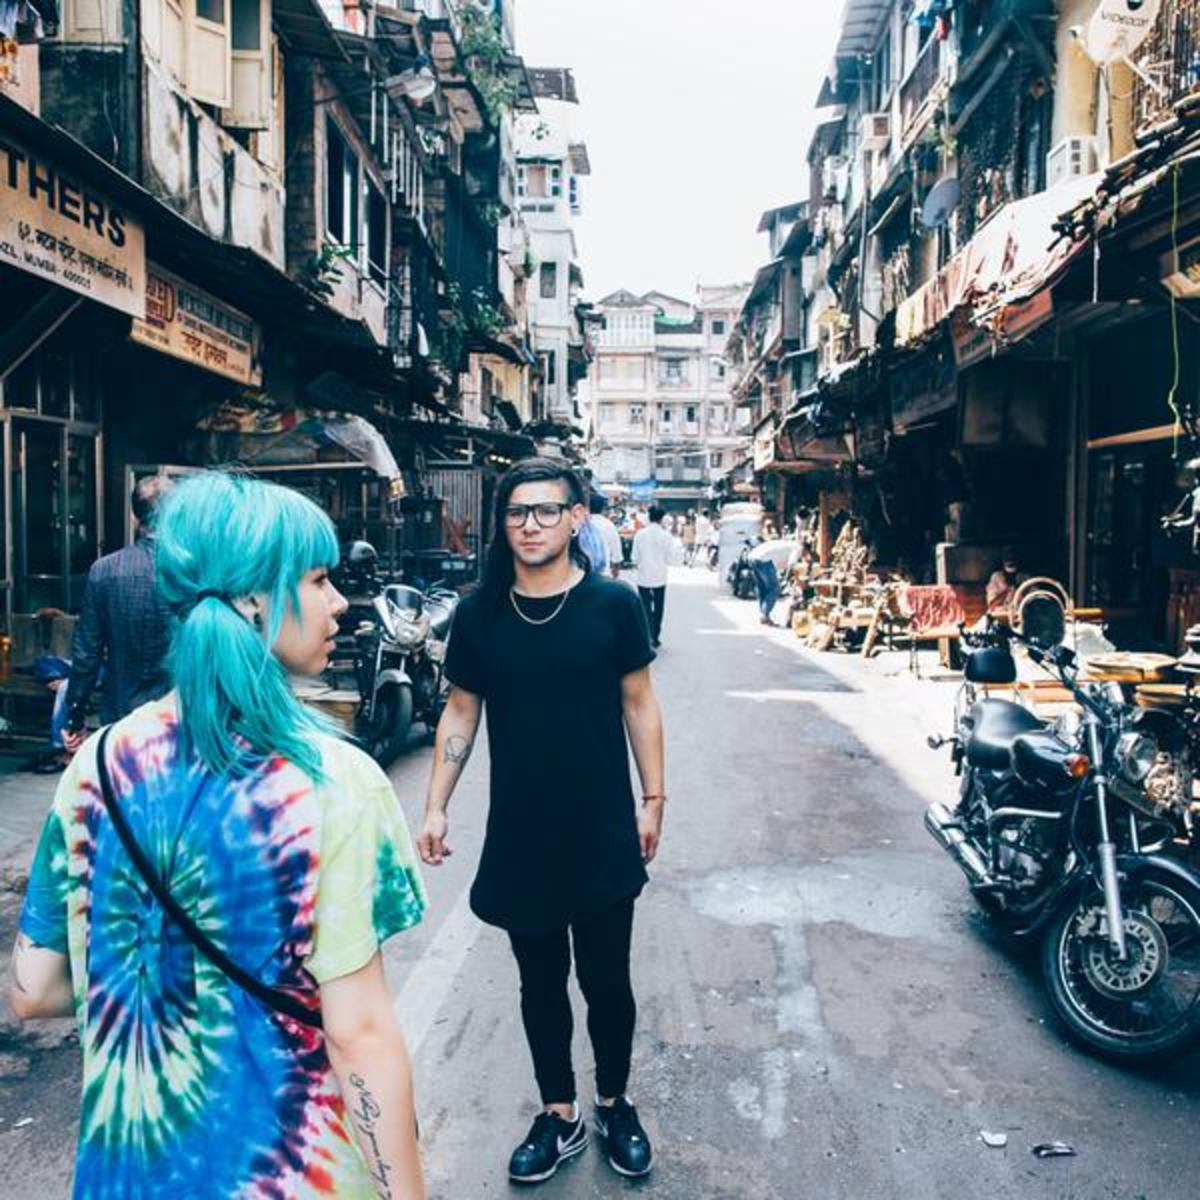 Skrillex with Mija in India.